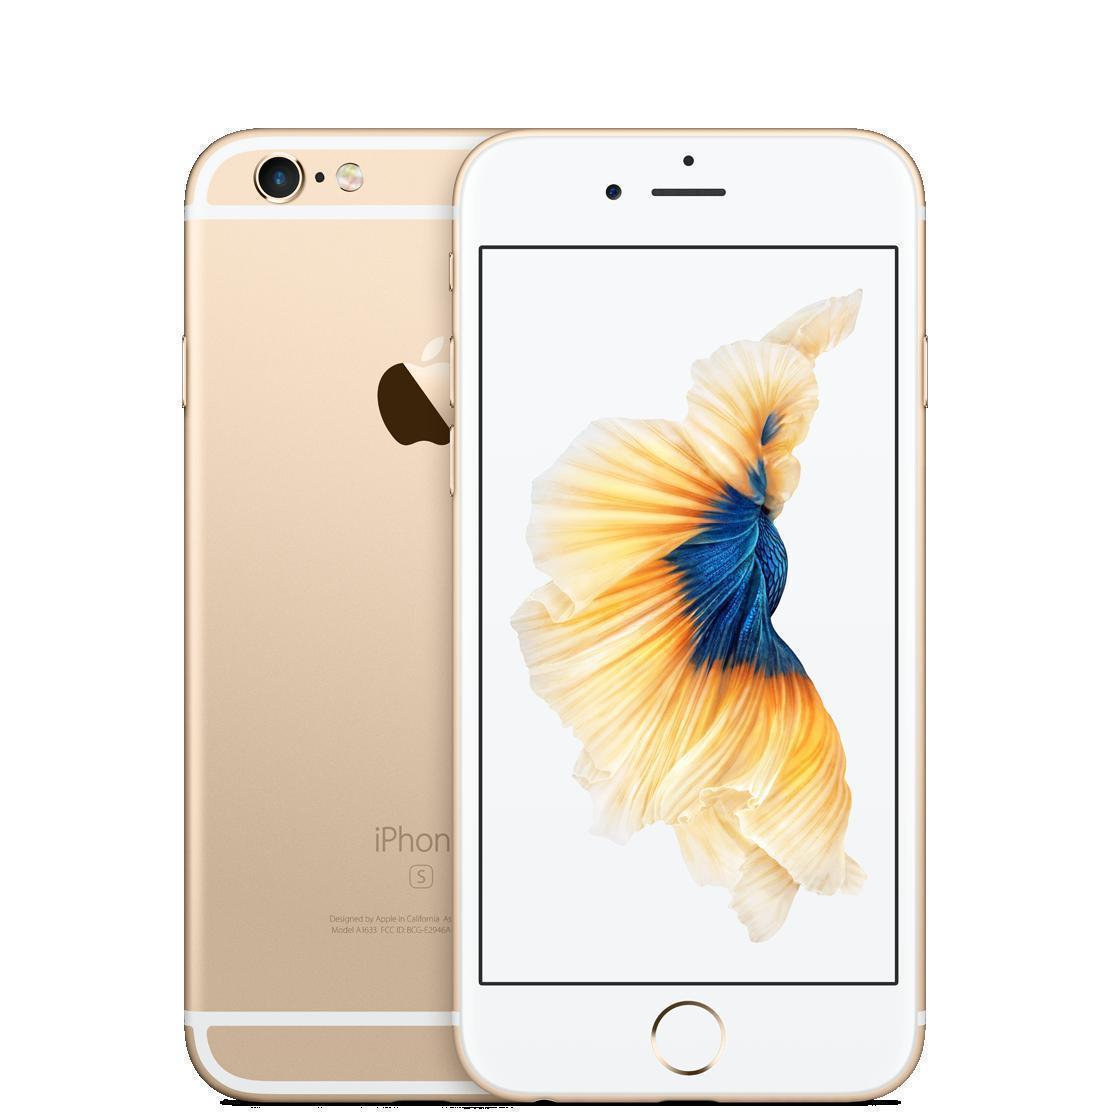 iPhone 6s 64GB - Gold - Ohne Vertrag